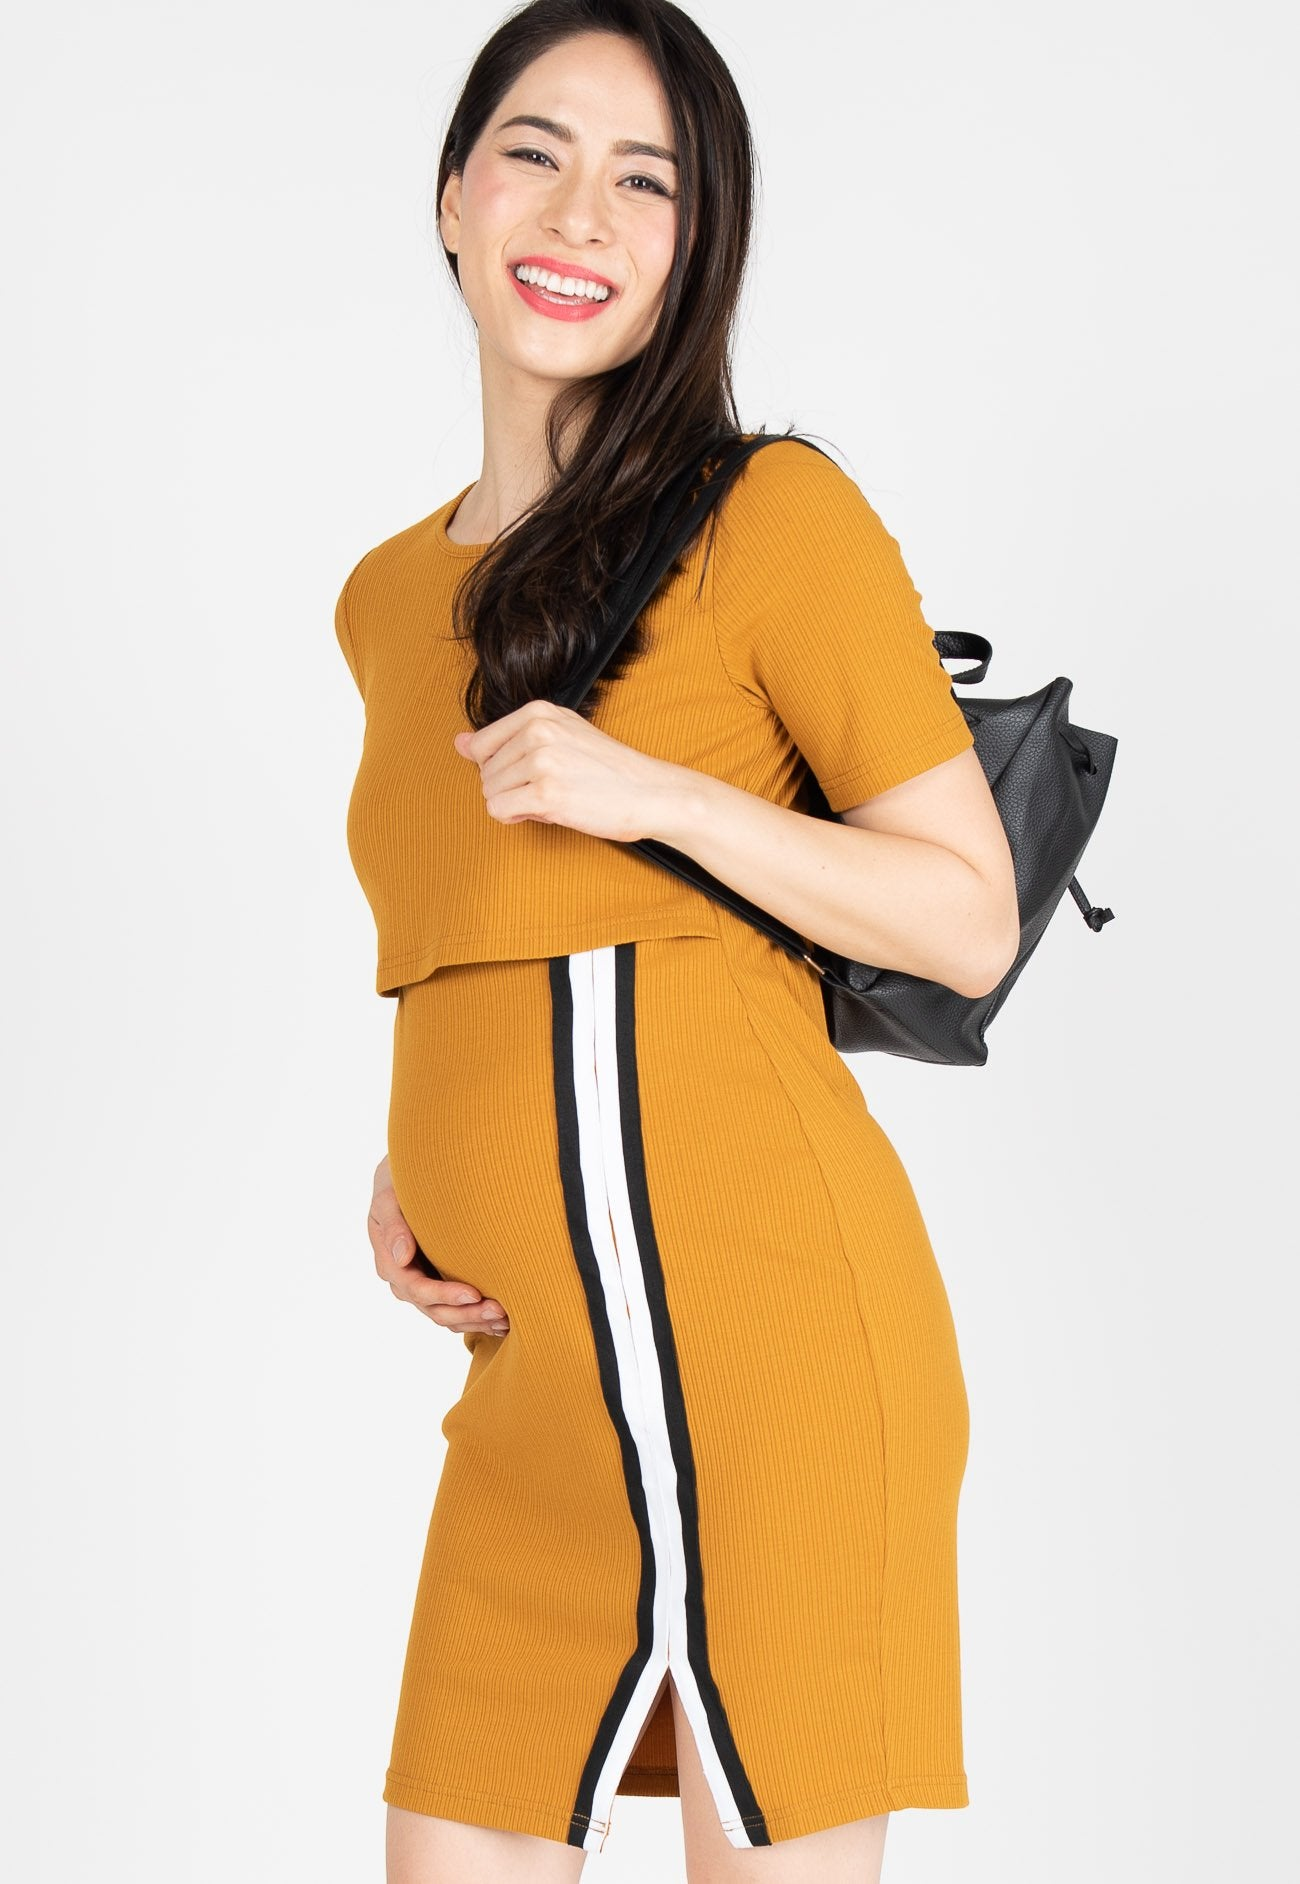 Mothercot Go-Getter Bodycon Nursing Dress in Yellow  by JumpEatCry - Maternity and nursing wear